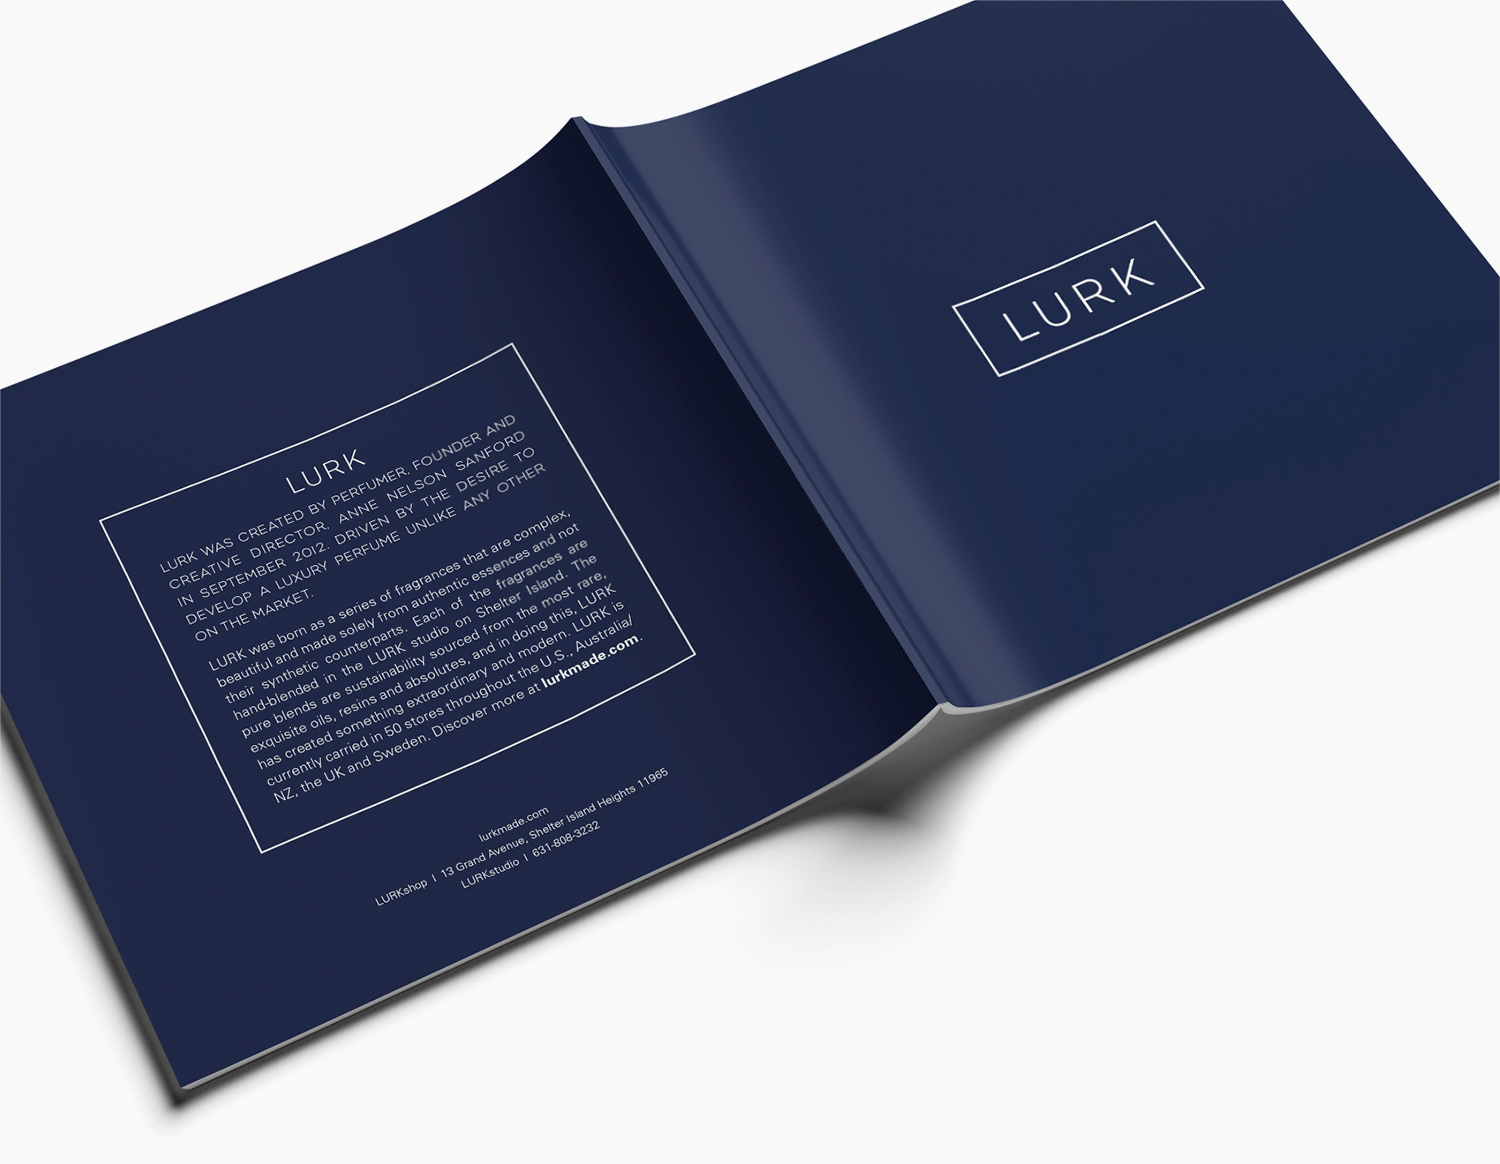 LURK Brand Book by JSGD